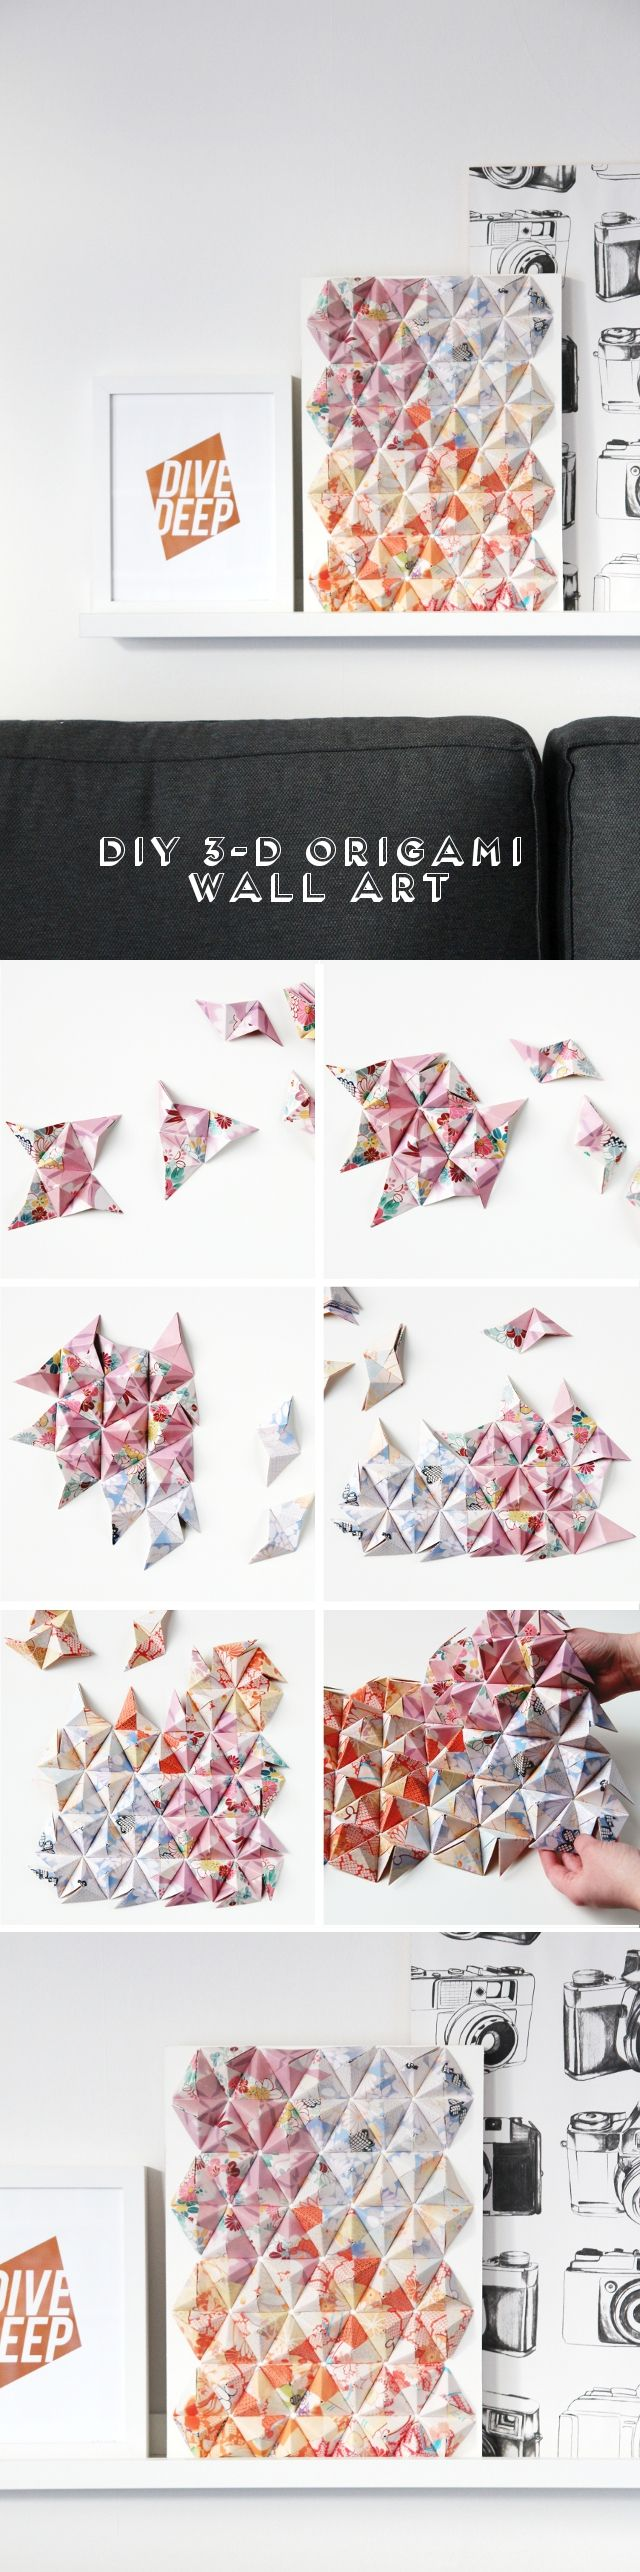 Diy 3D Origami Wall Art.